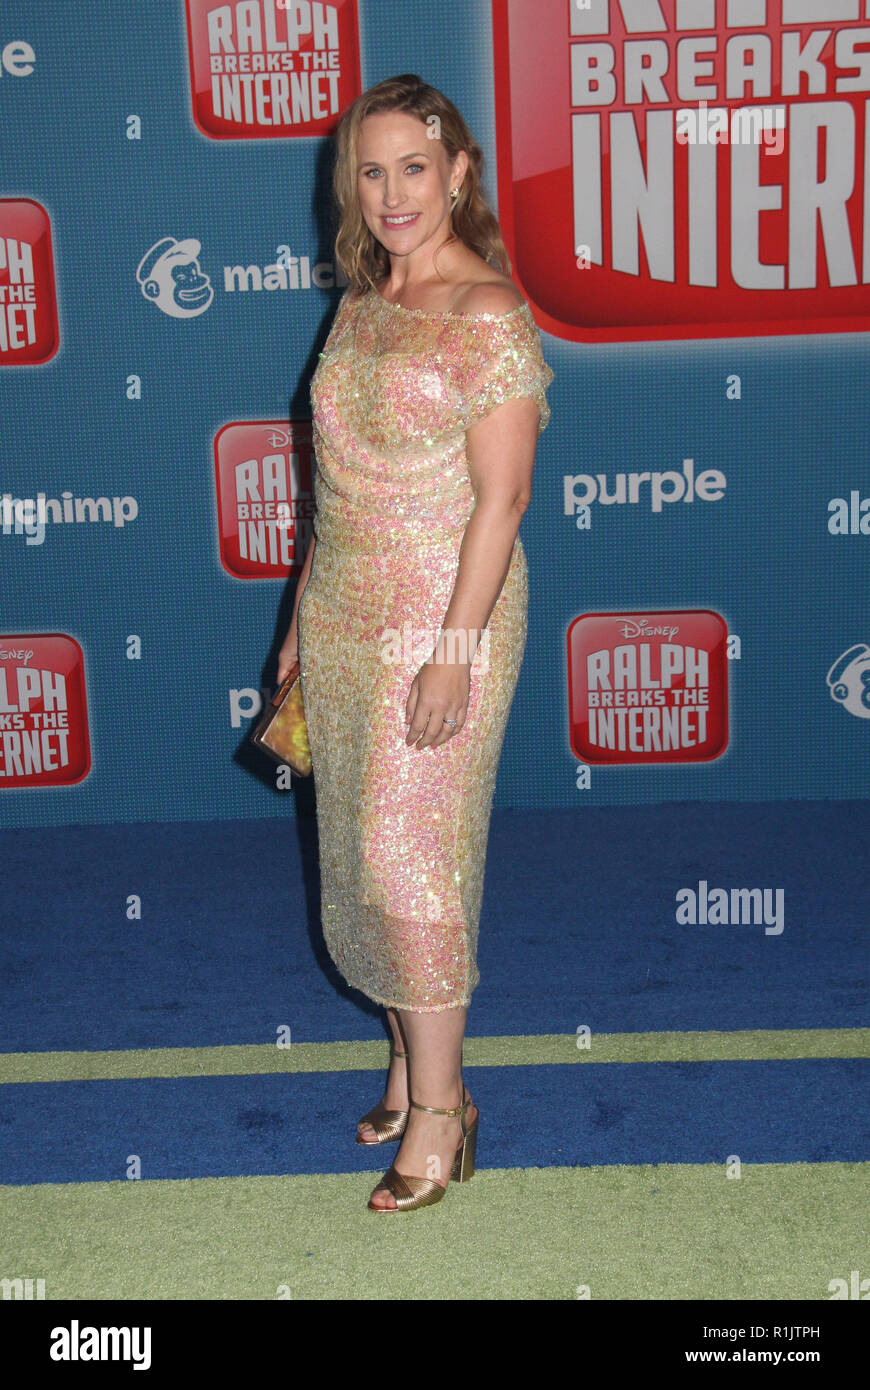 Pamela Ribon  11/05/2018 The World Premiere of 'Ralph Breaks the Internet' held at El Capitan Theatre in Los Angeles, CA   Photo: Cronos/Hollywood News - Stock Image